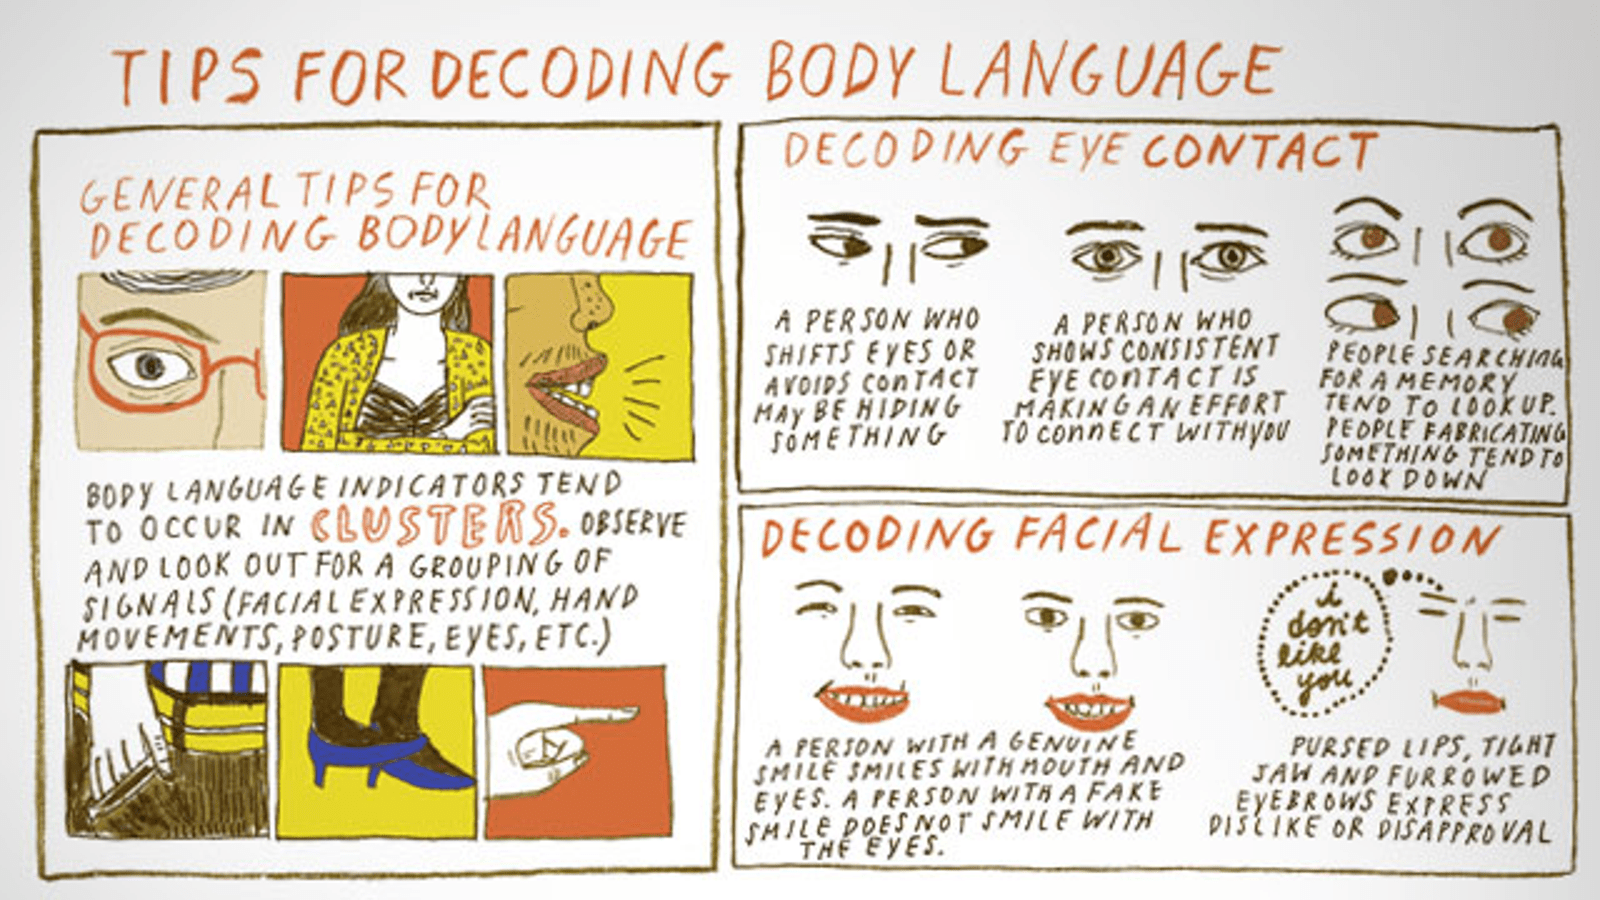 Use This Body Language Cheat Sheet To Decode Common Non